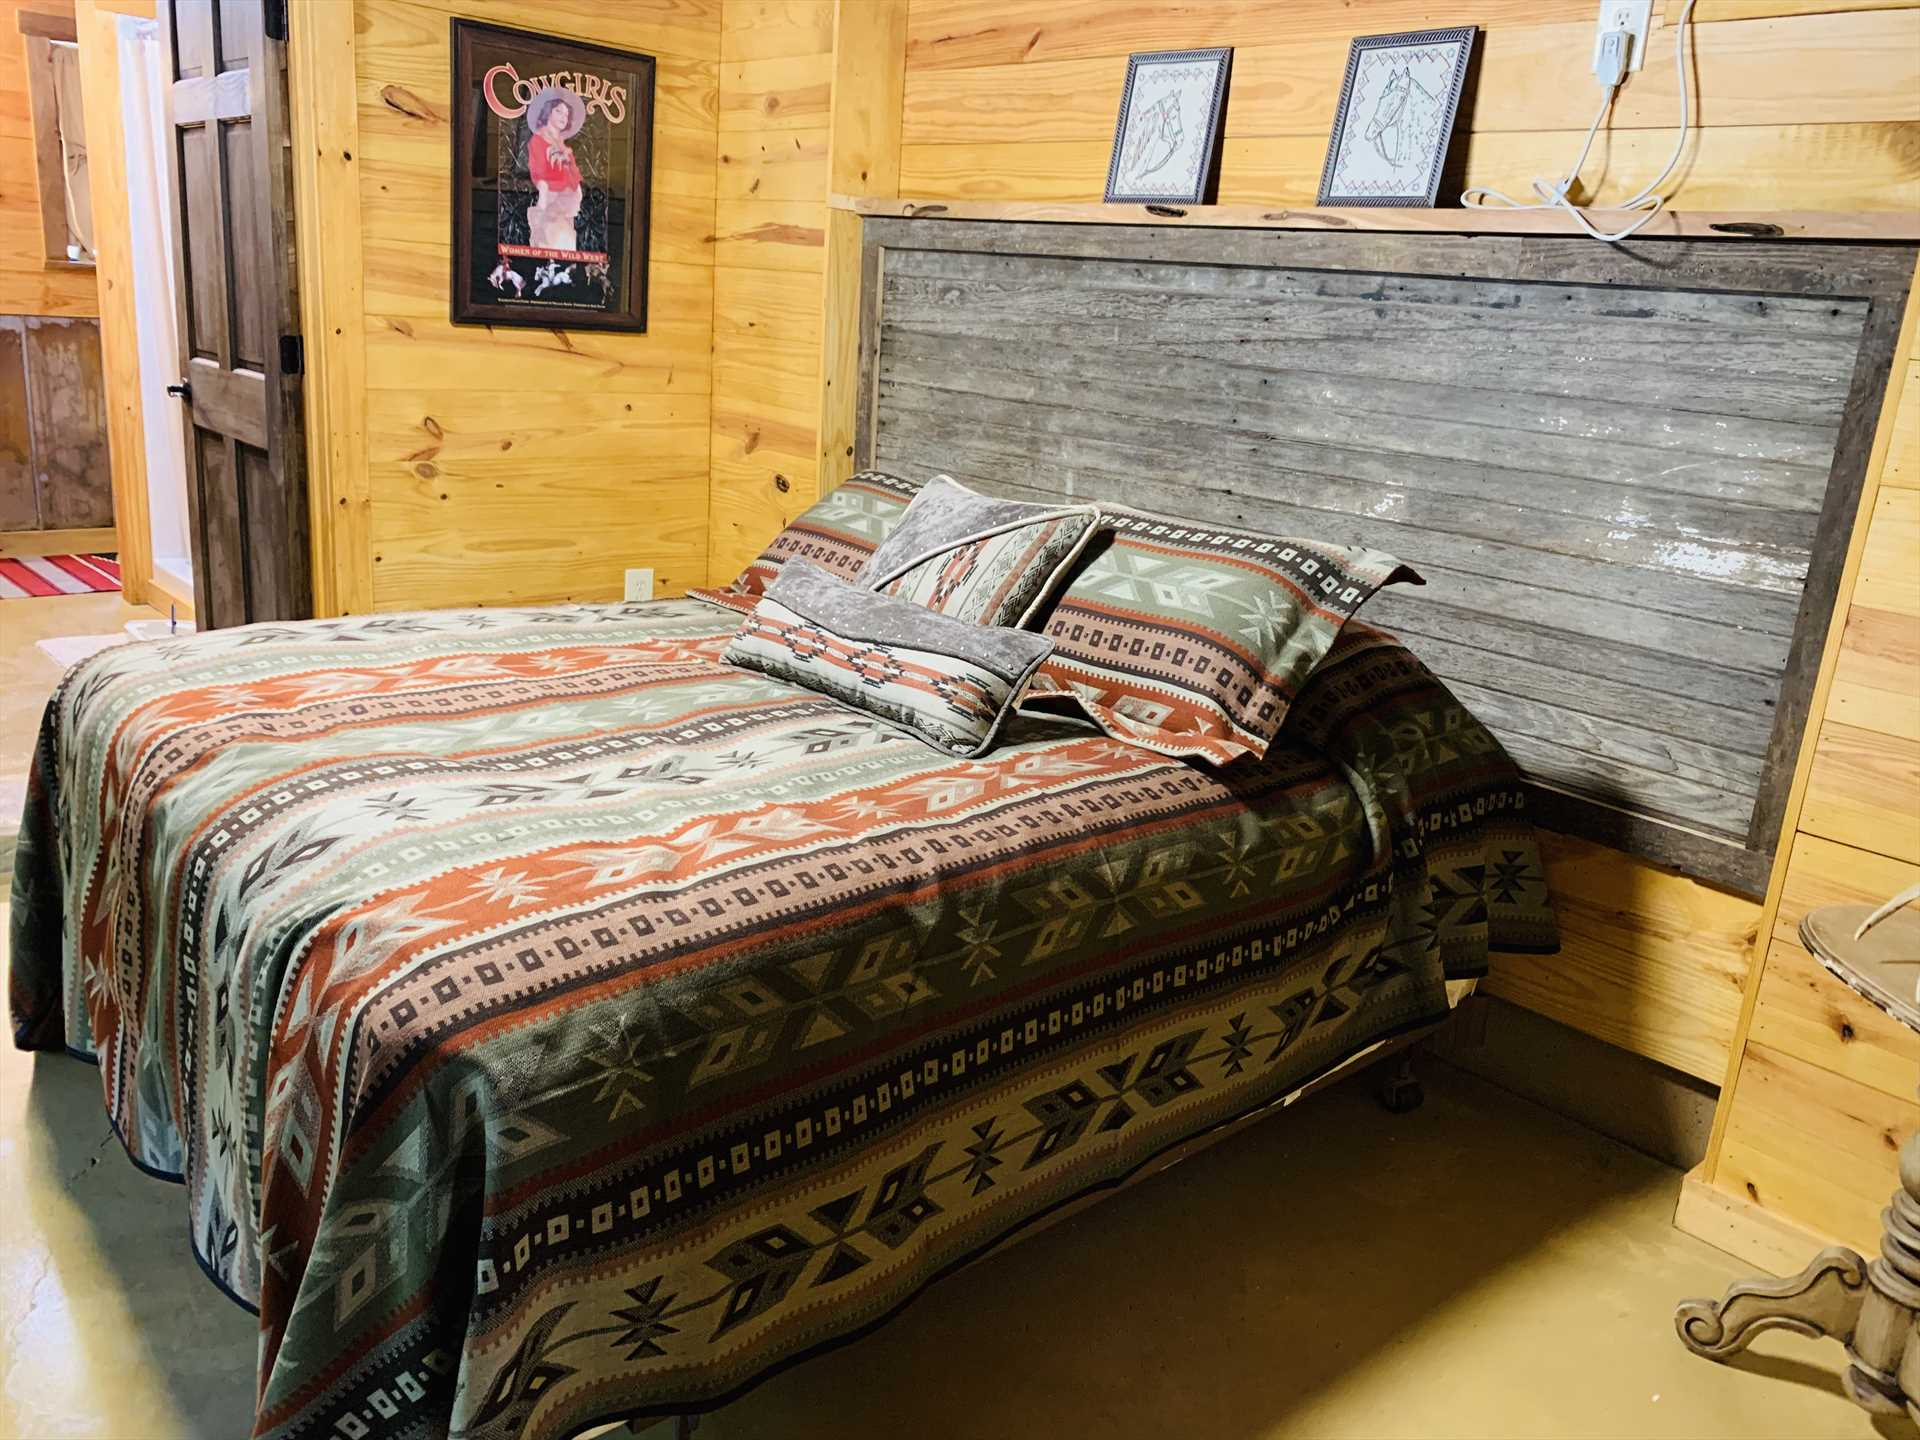 The plush queen-sized bed comes with soft and comfy linens-and check out that barn board headboard!